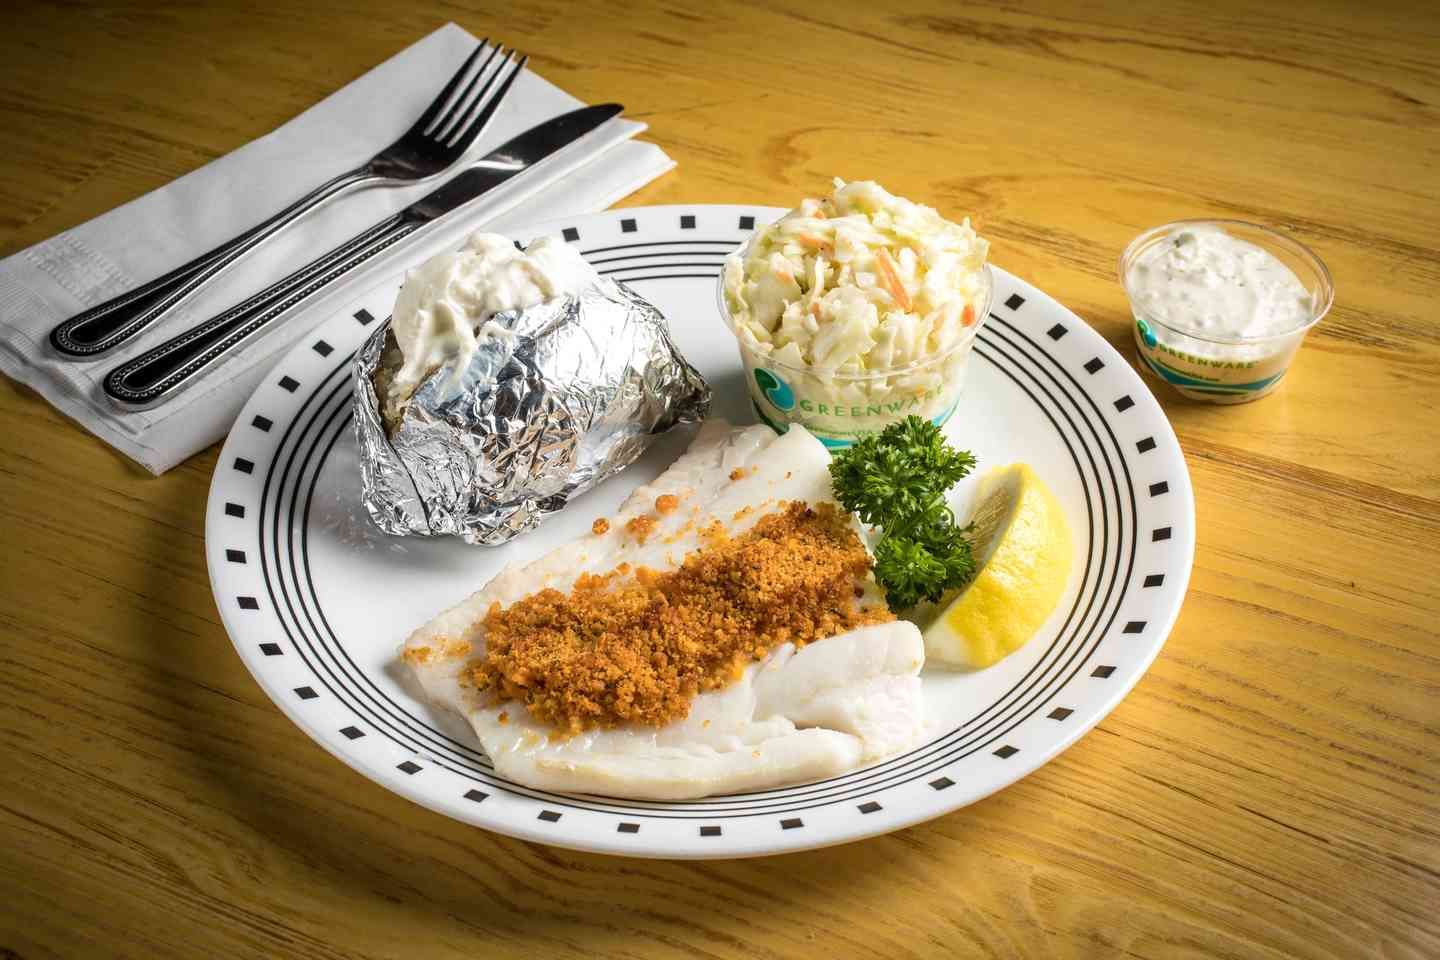 Fried or Baked Haddock Platter